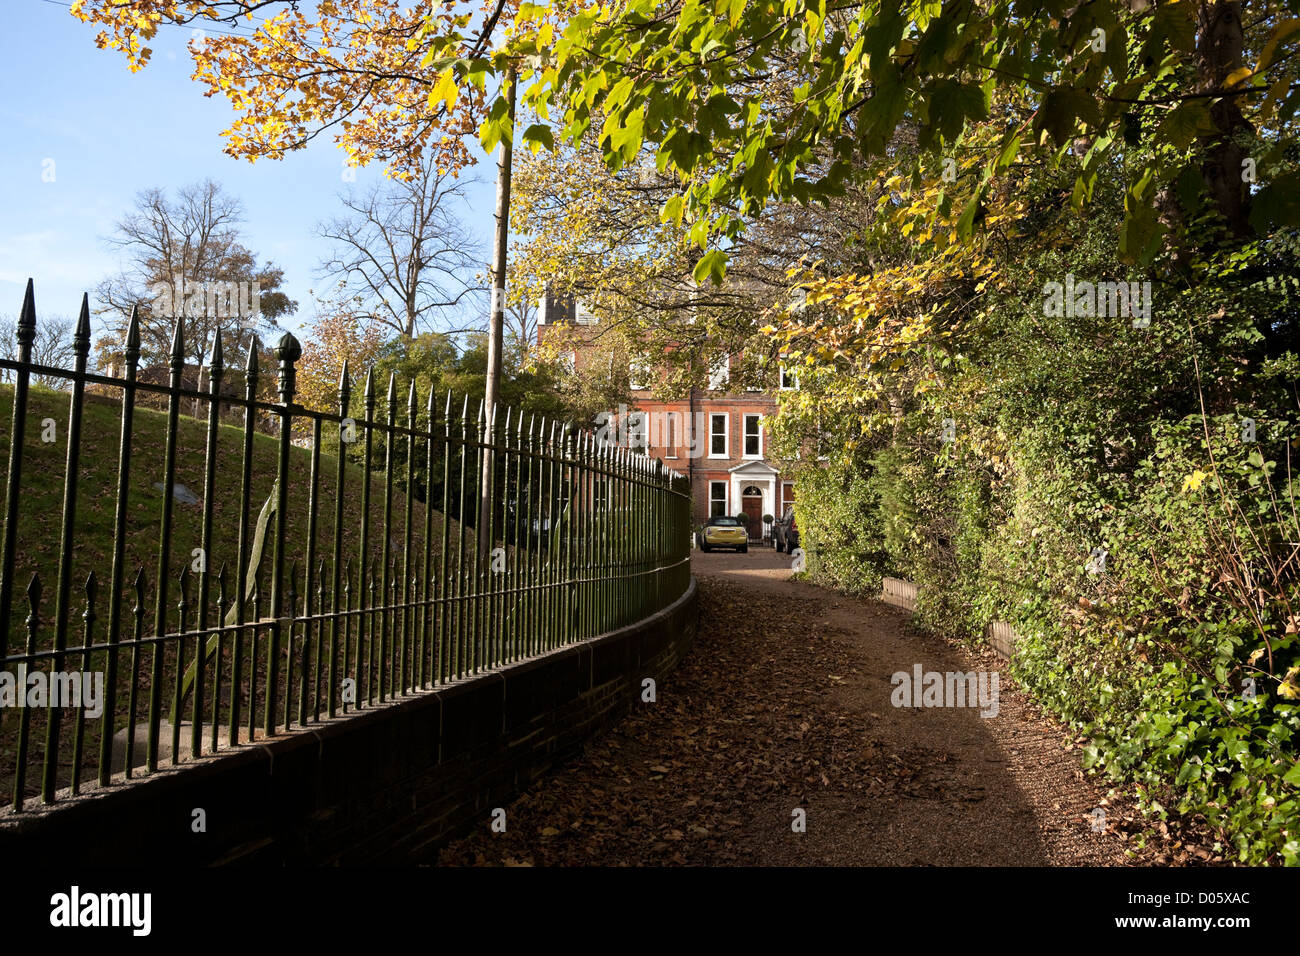 Fenced driveway - Stock Image